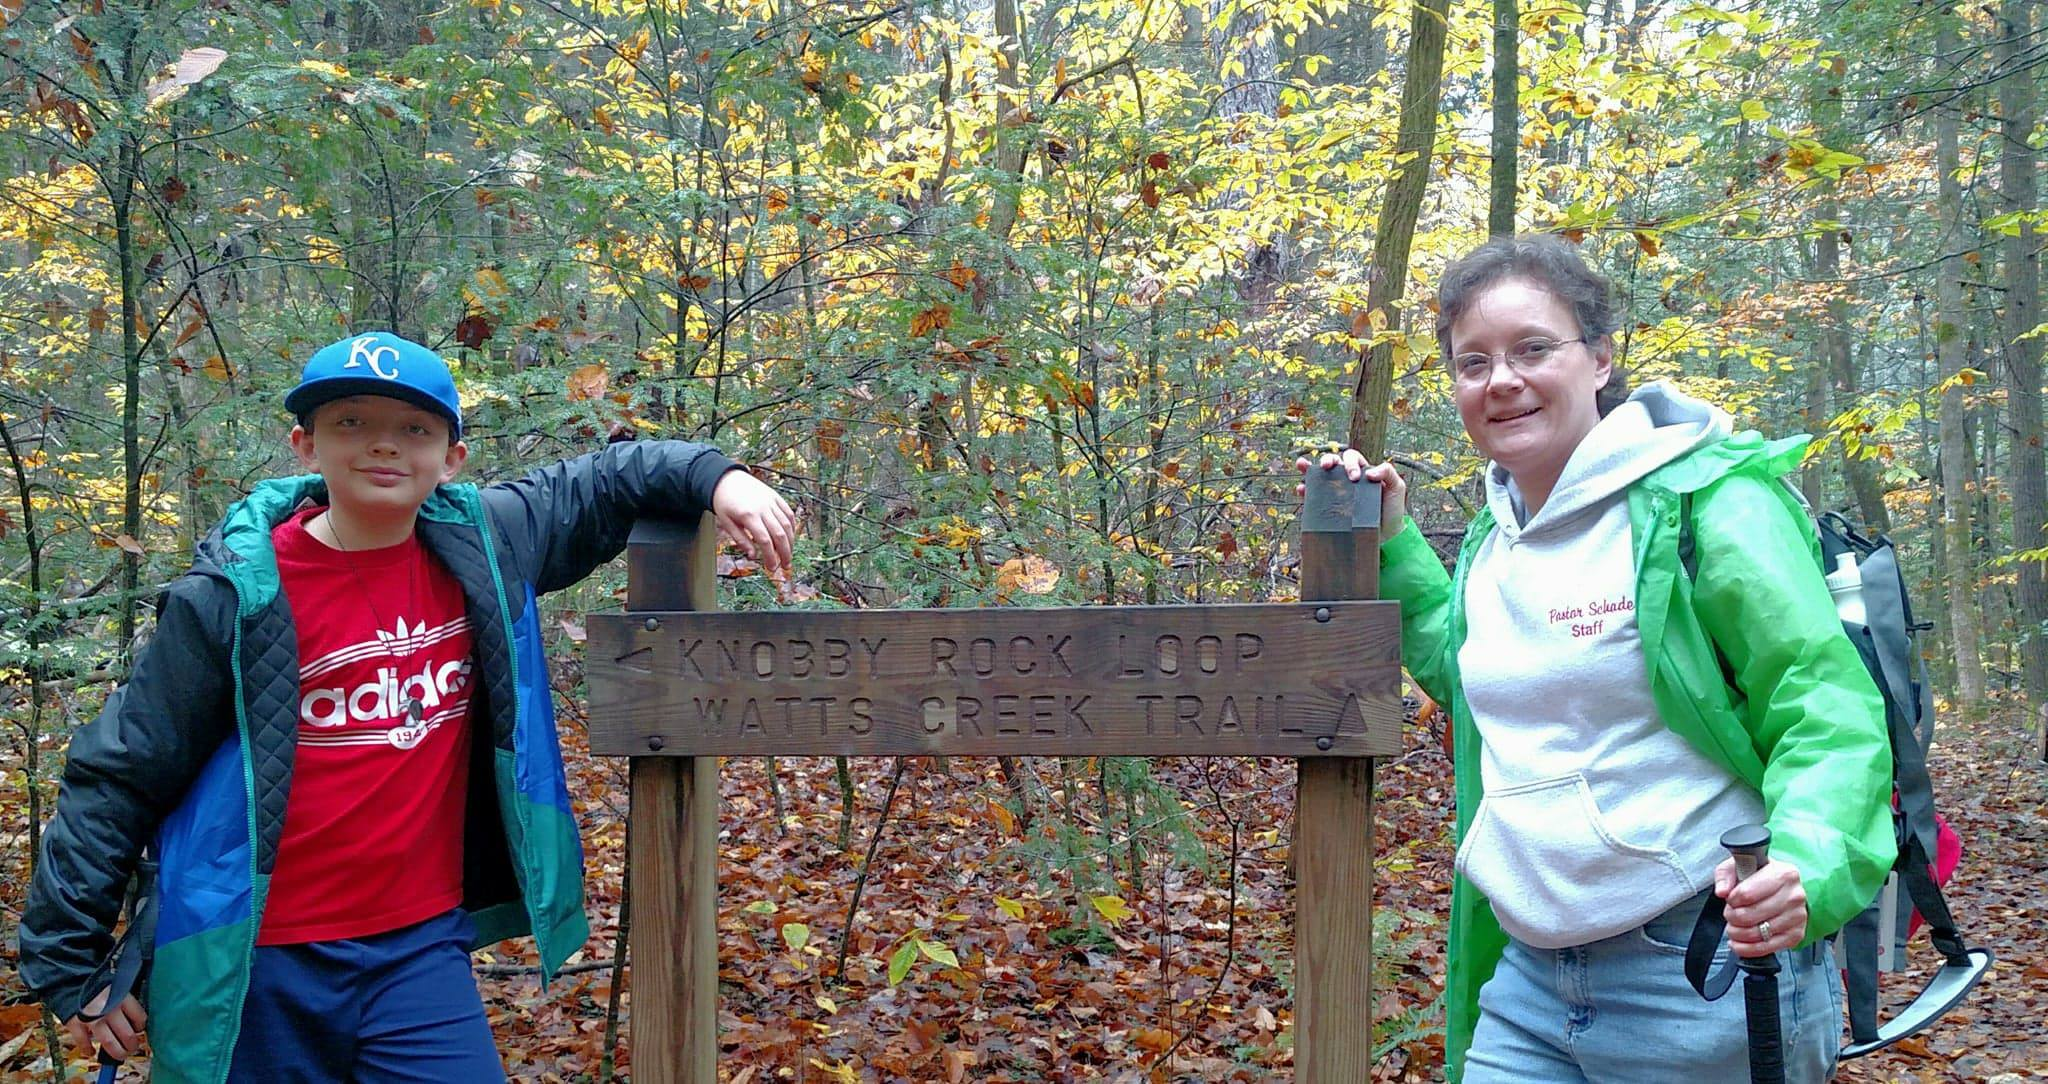 Leah Schade and son Benjamin, Blanton Forest, Ky.